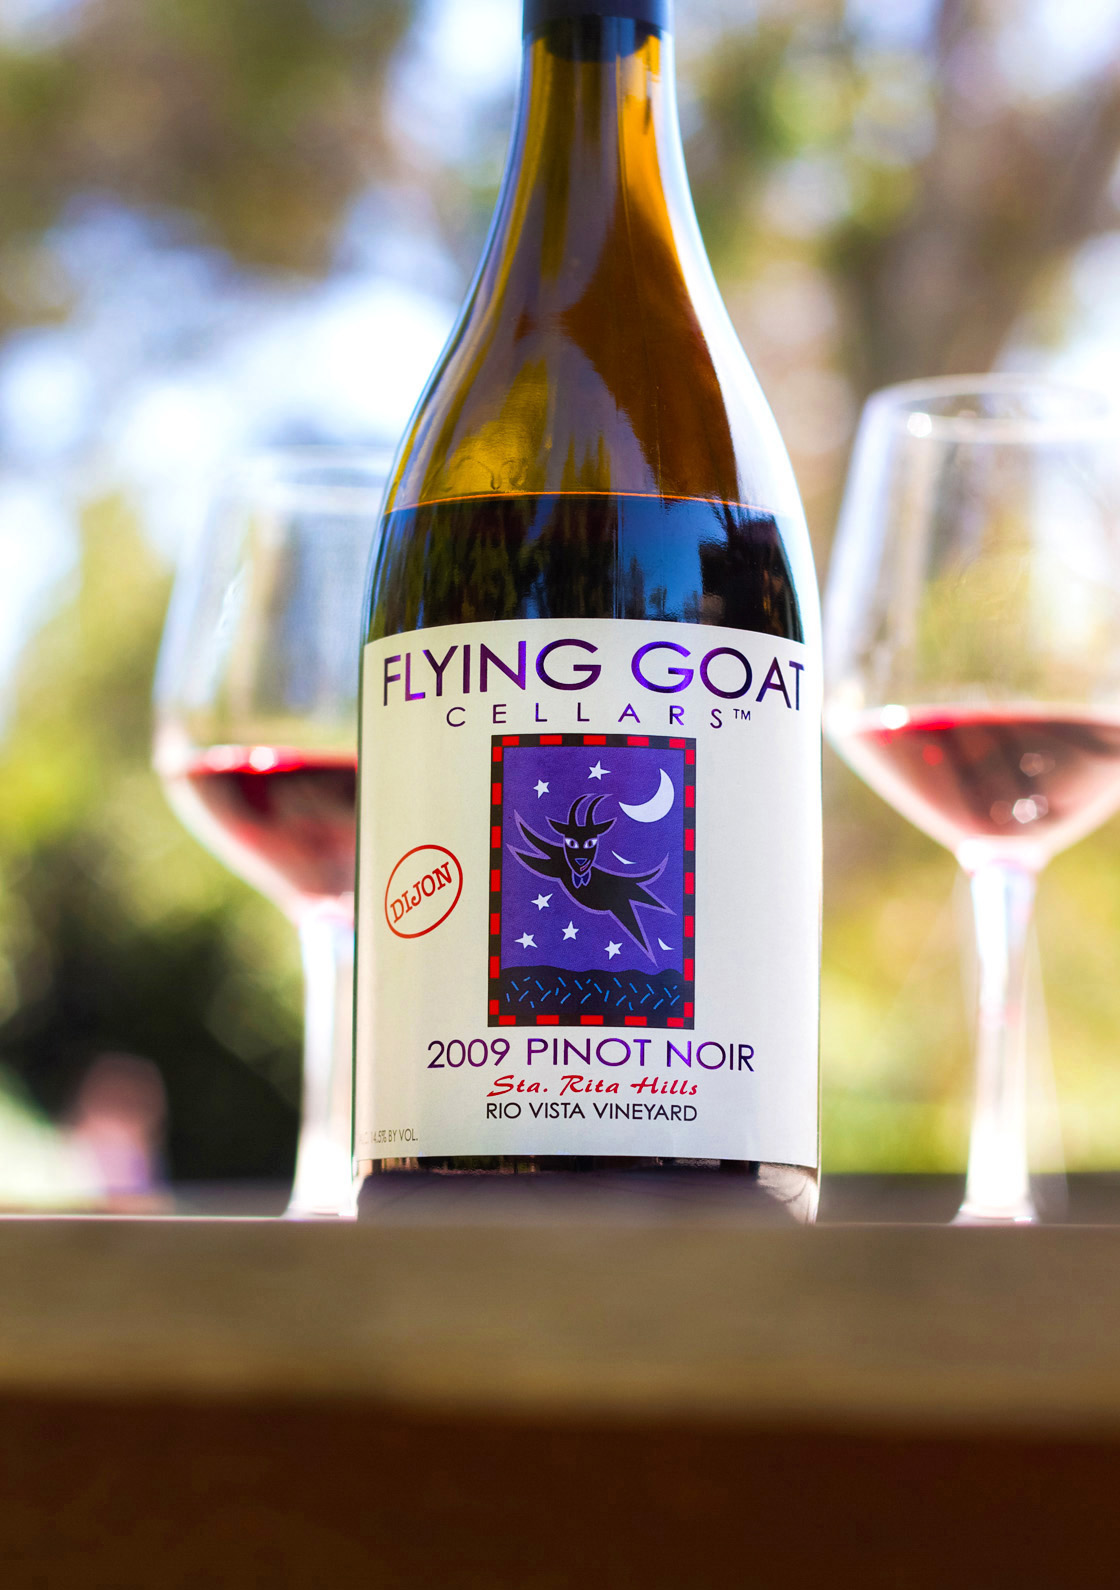 2009 Flying Goat Cellars Pinot Noir Rio Vista Vineyard Dijon